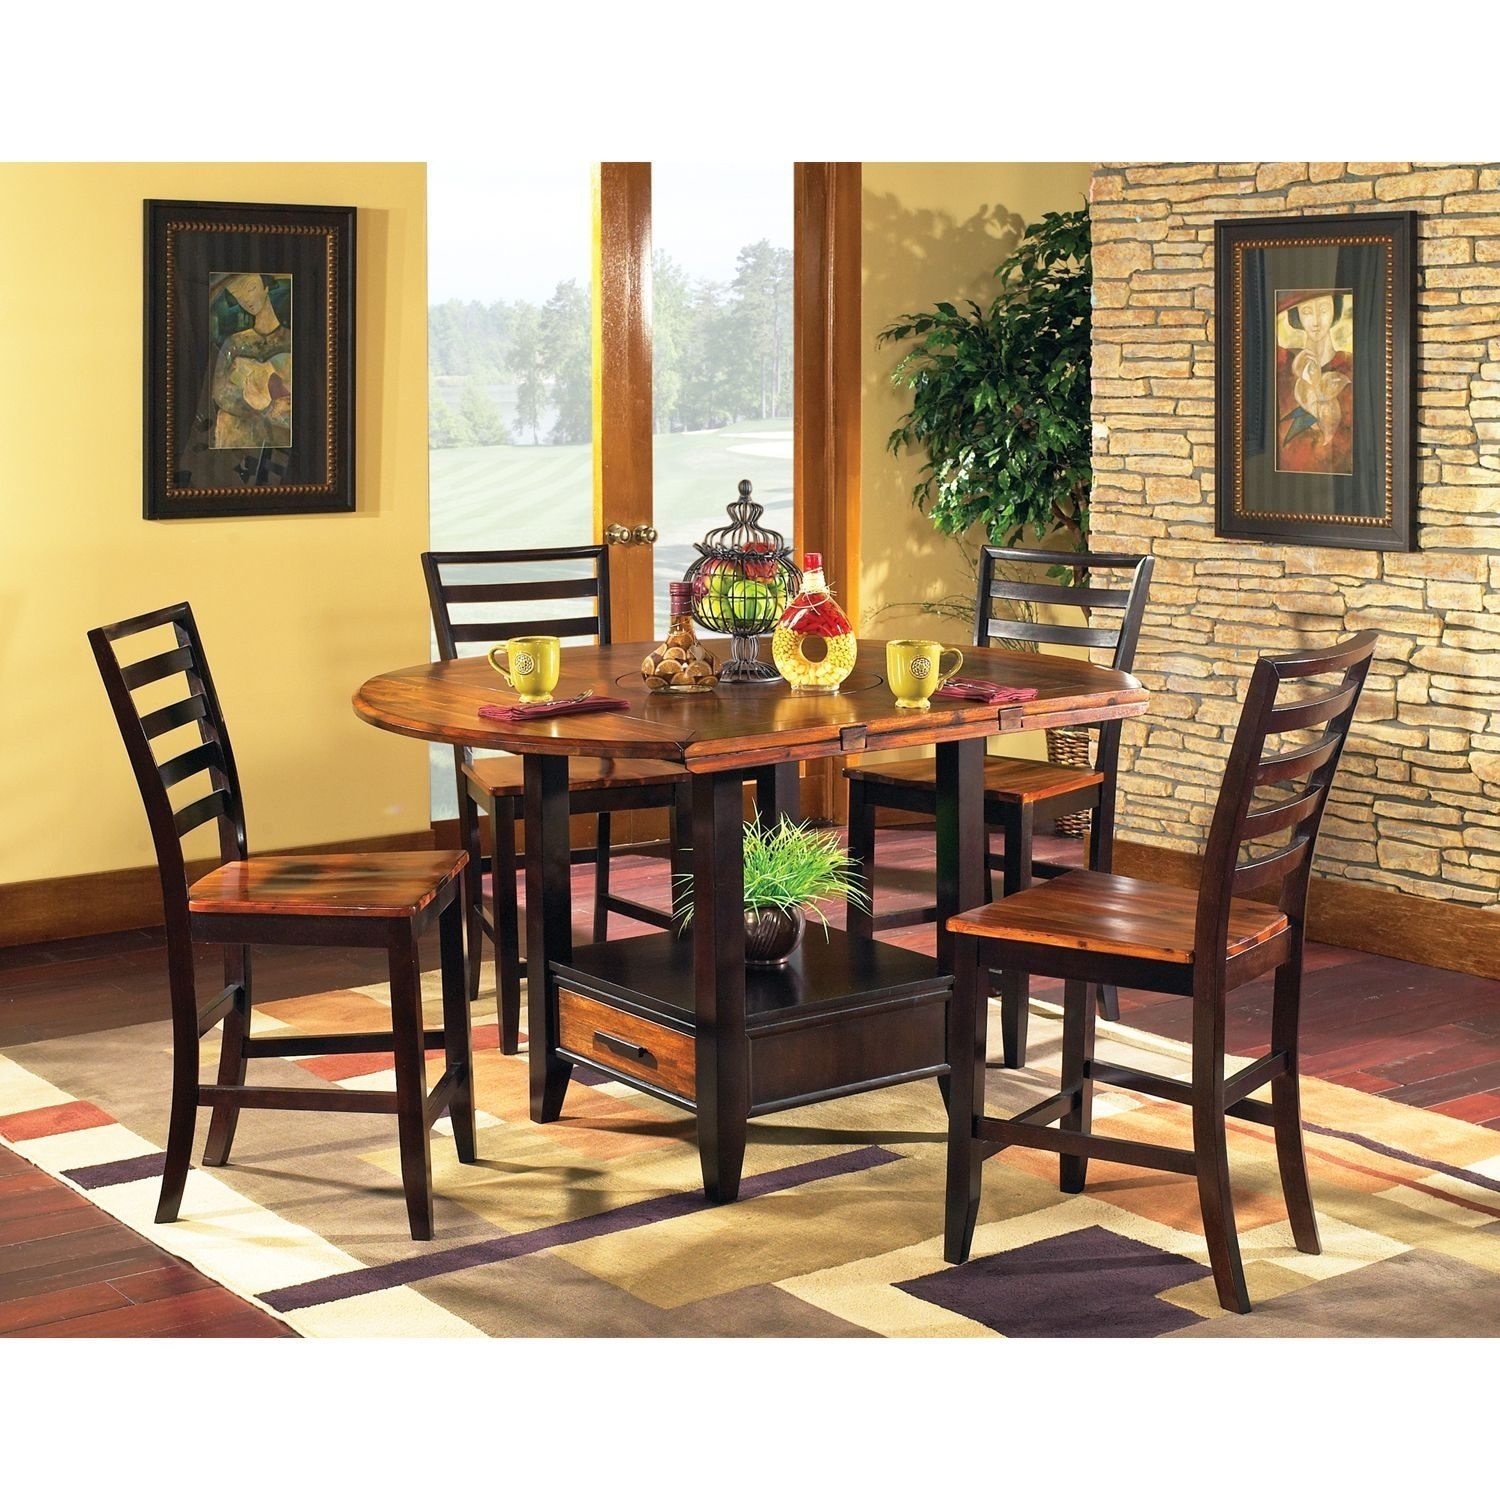 Pierson Counter Height Dining Setlauren Wells – 5 Pc | For The Inside Most Recent Laurent 5 Piece Round Dining Sets With Wood Chairs (View 4 of 20)